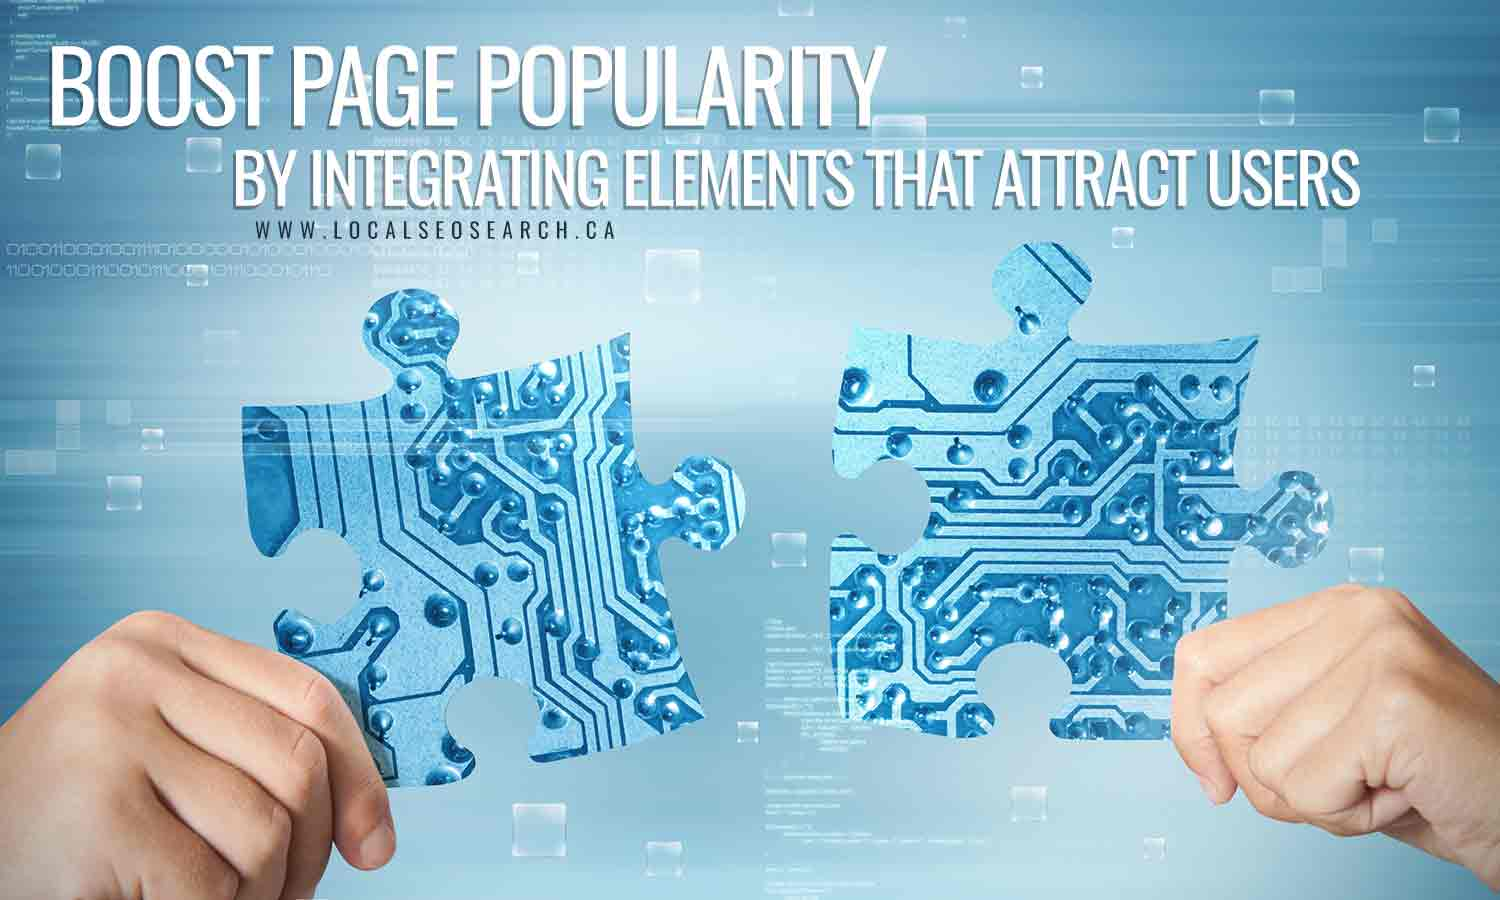 Boost page popularity by integrating elements